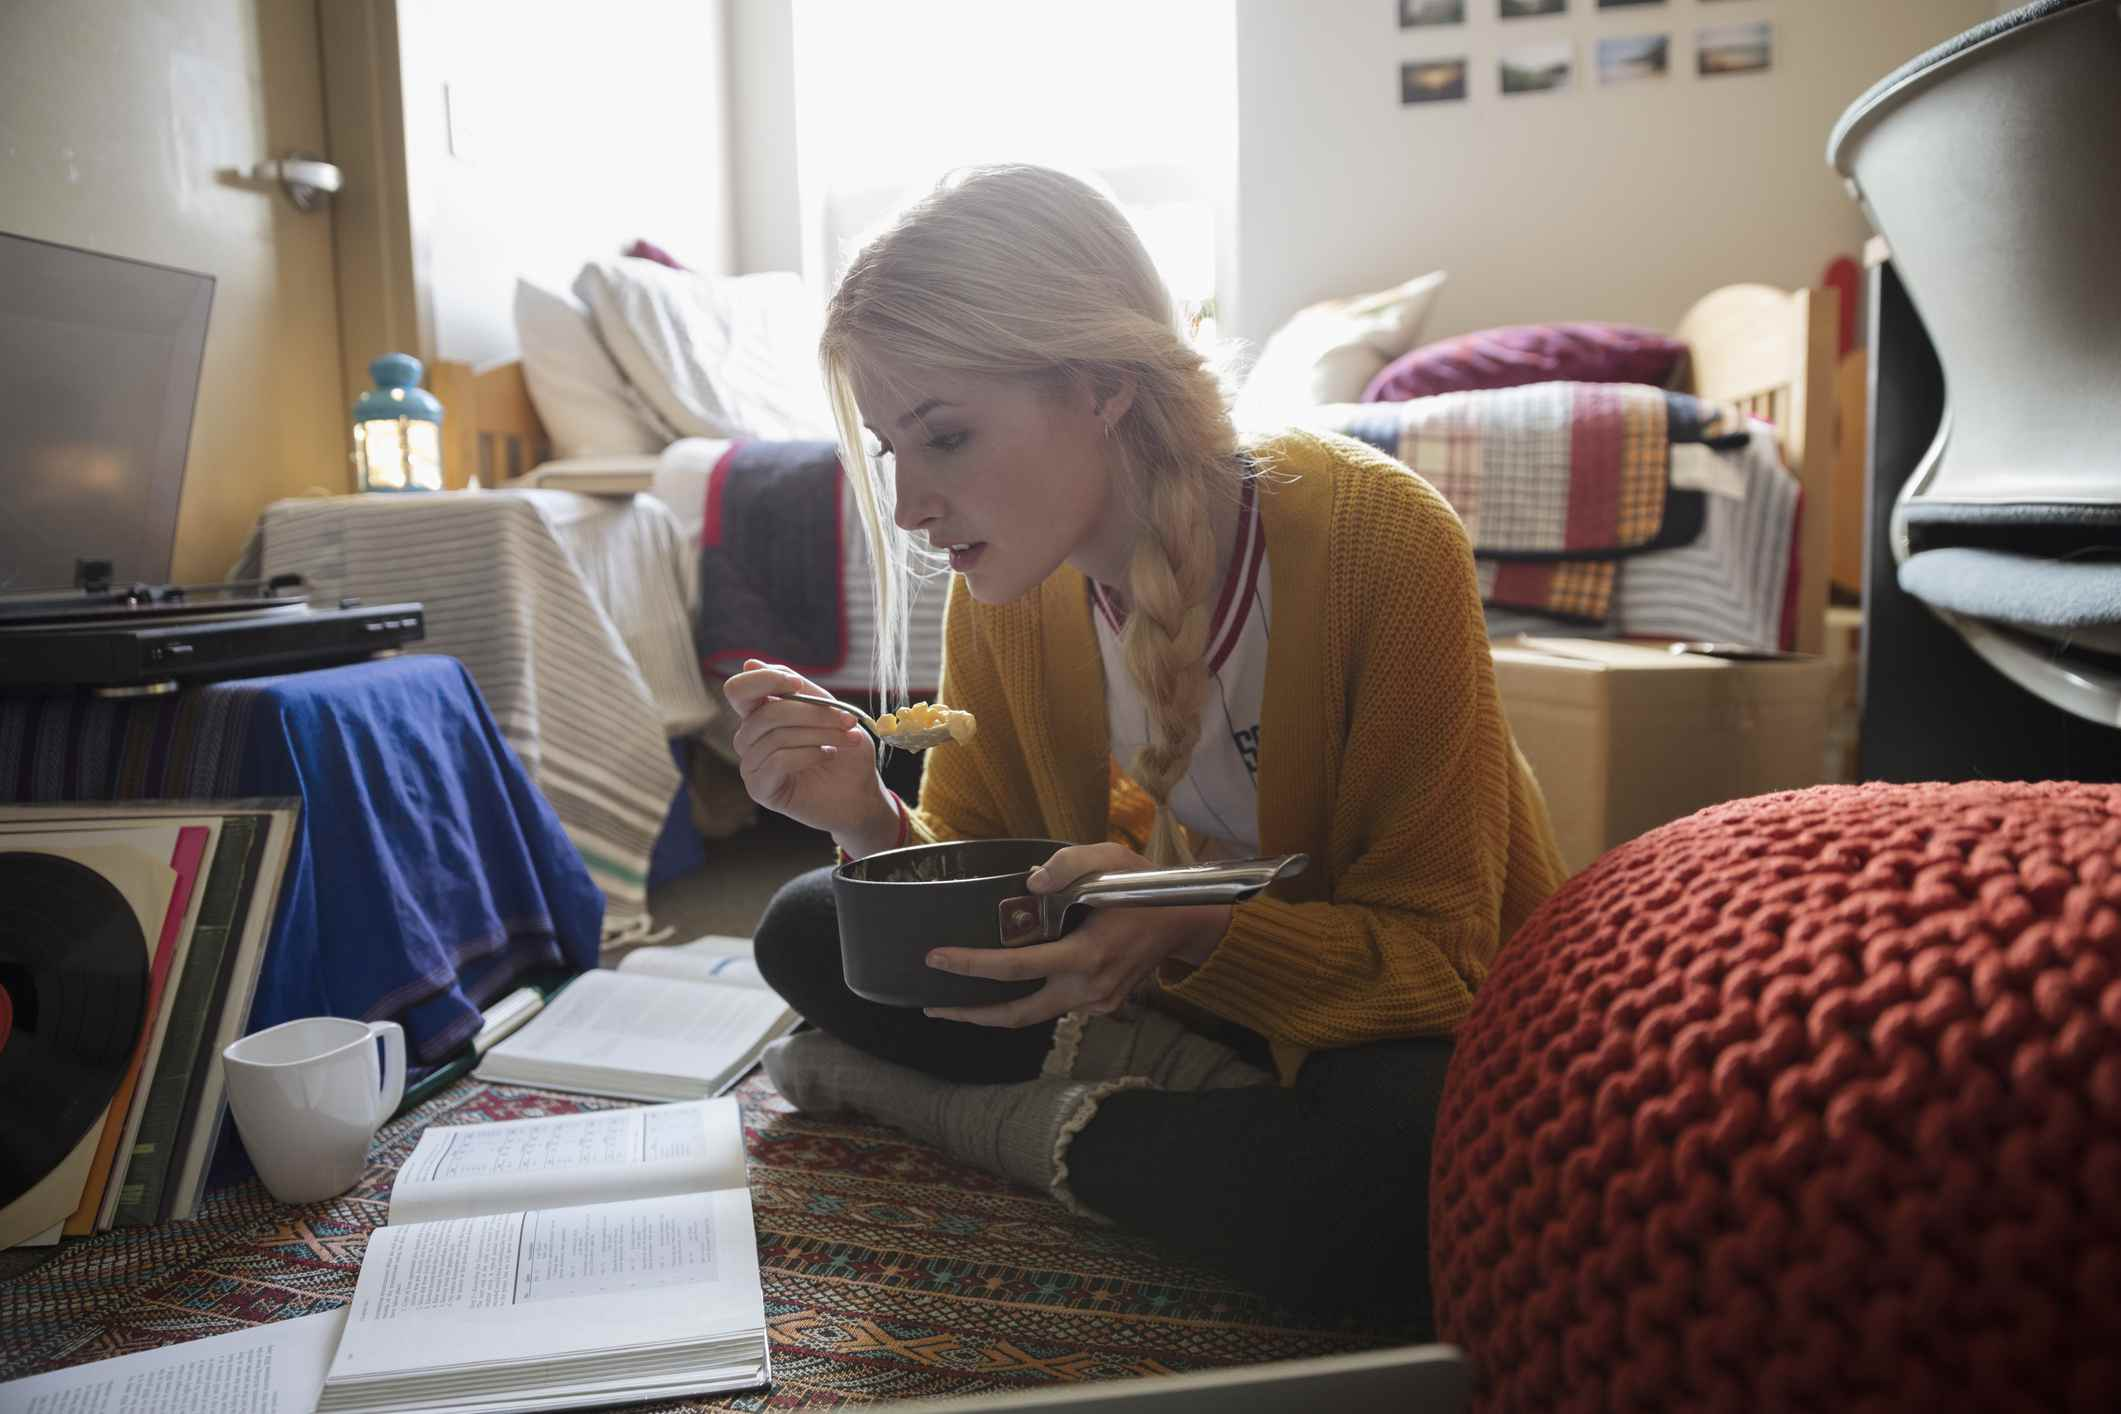 A college student studying